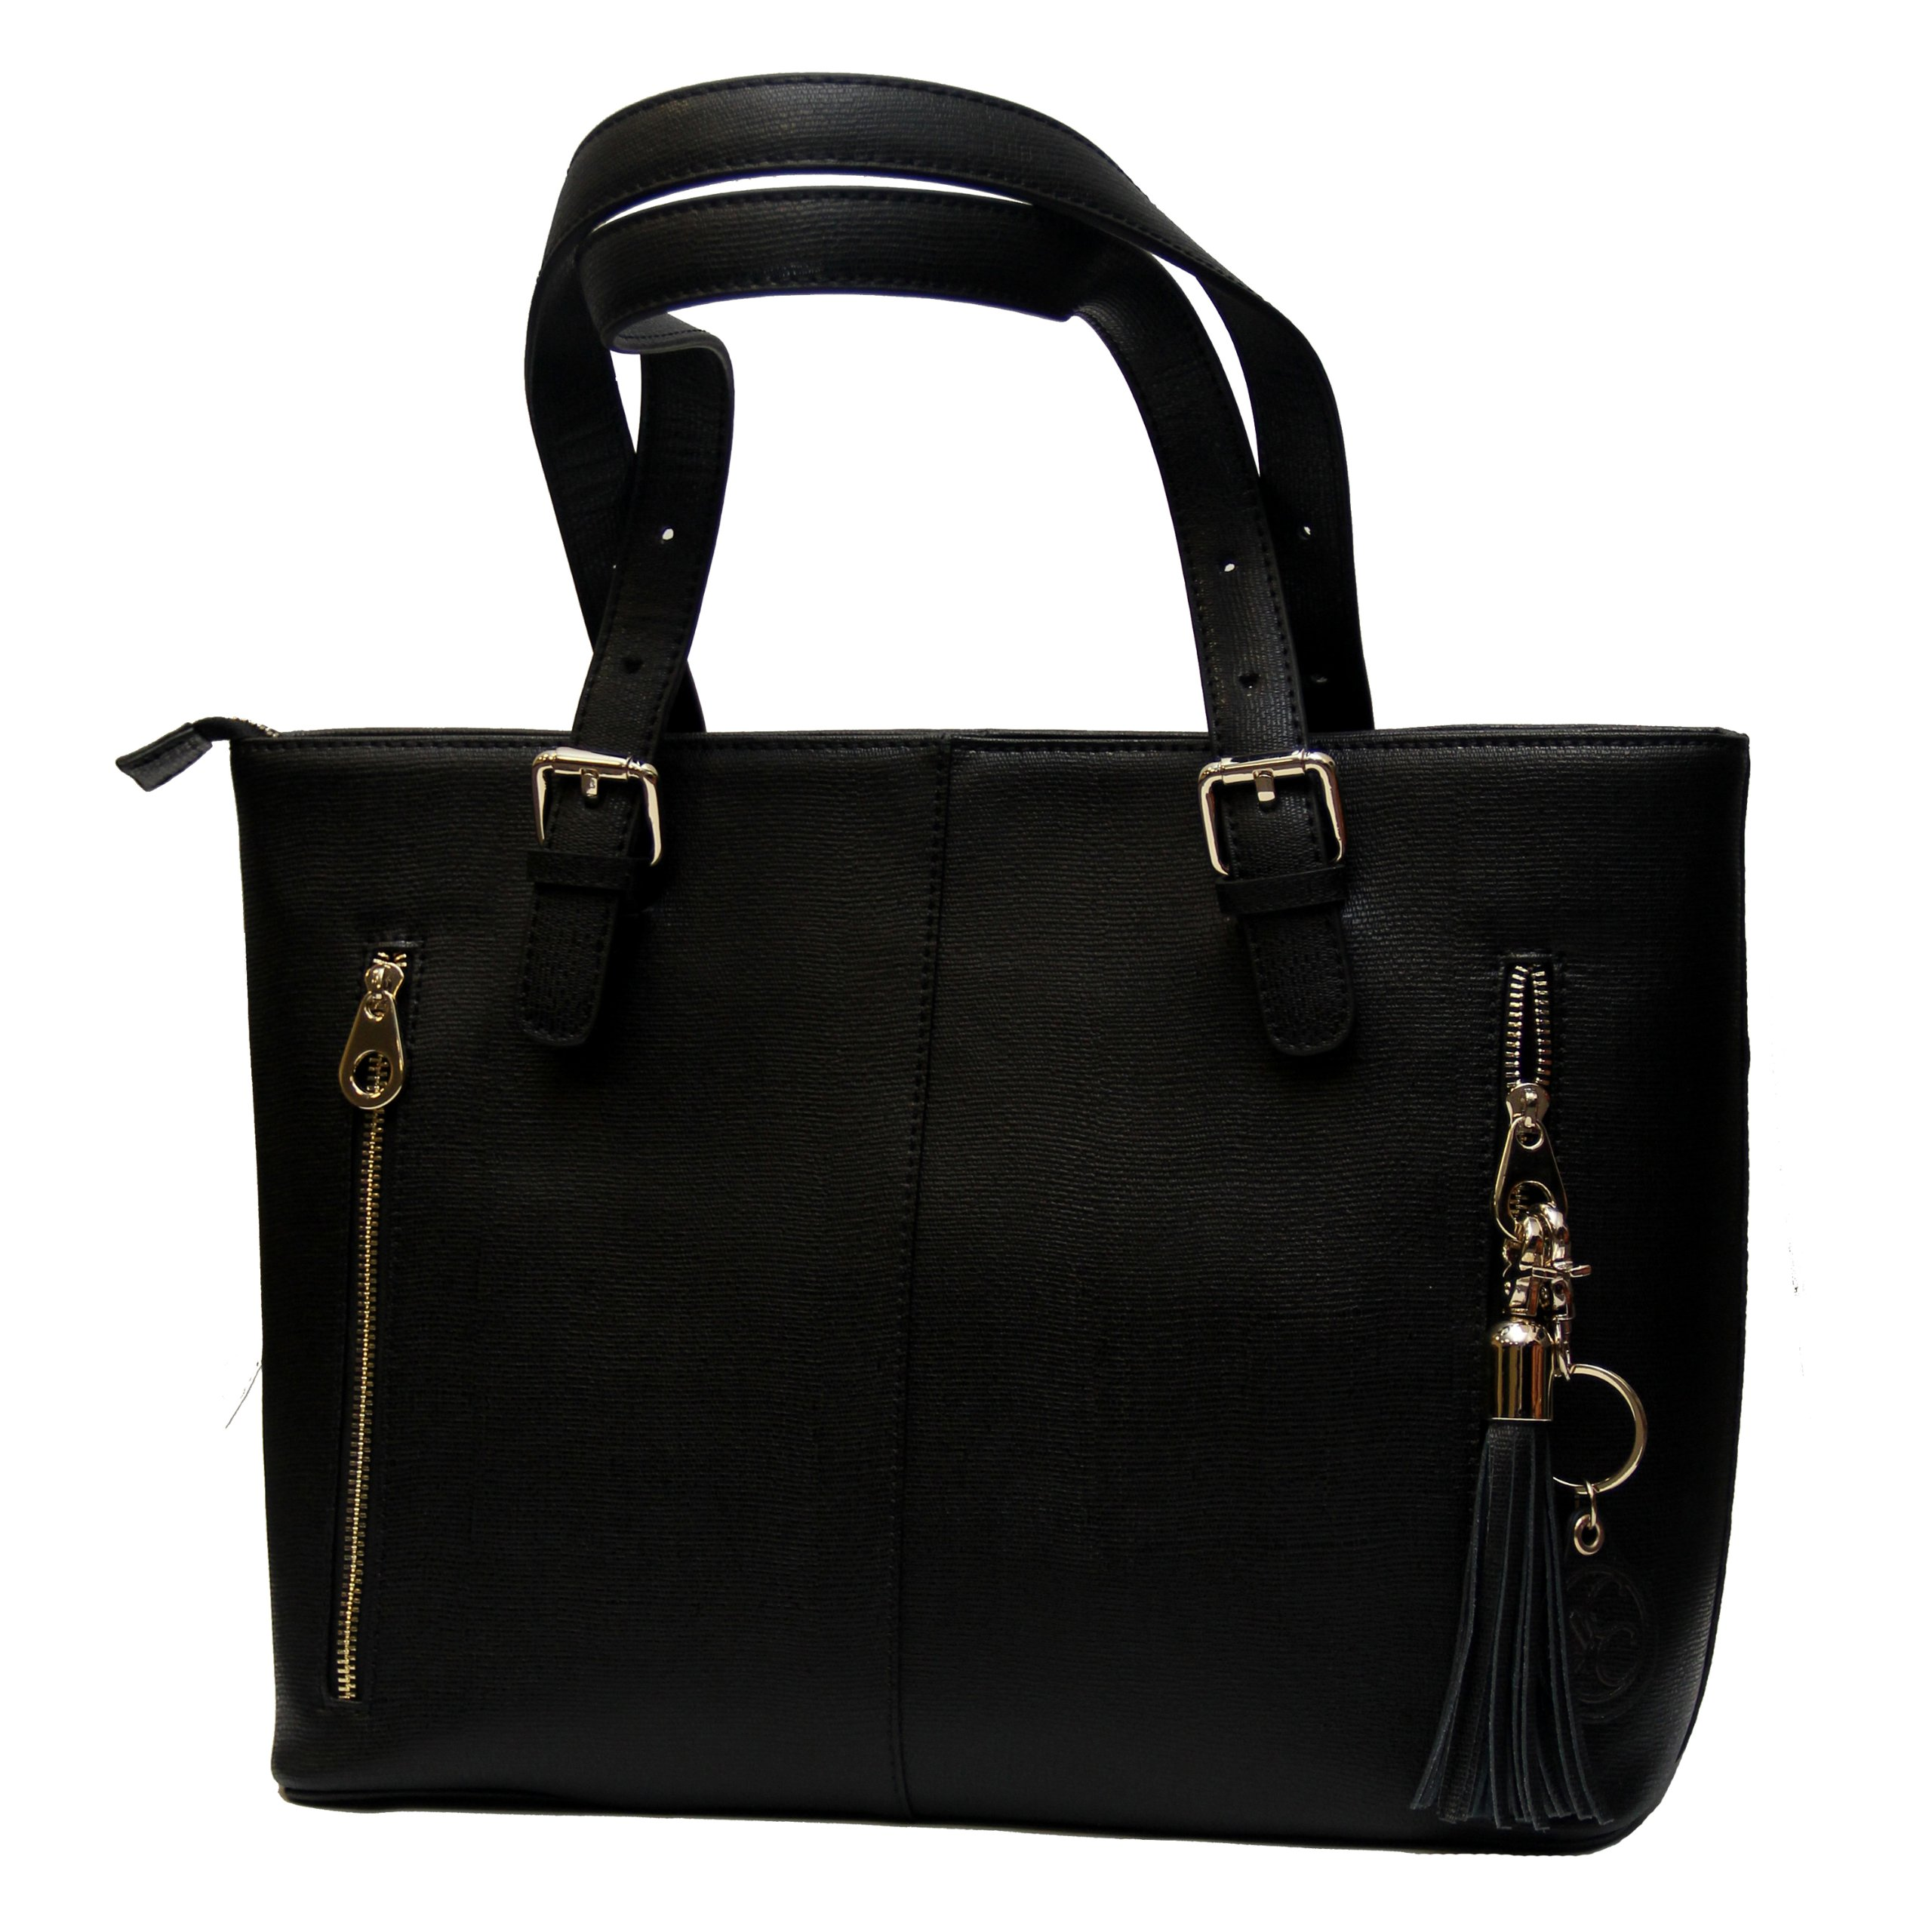 Concealed Carrie Concealed Carry Black Tote